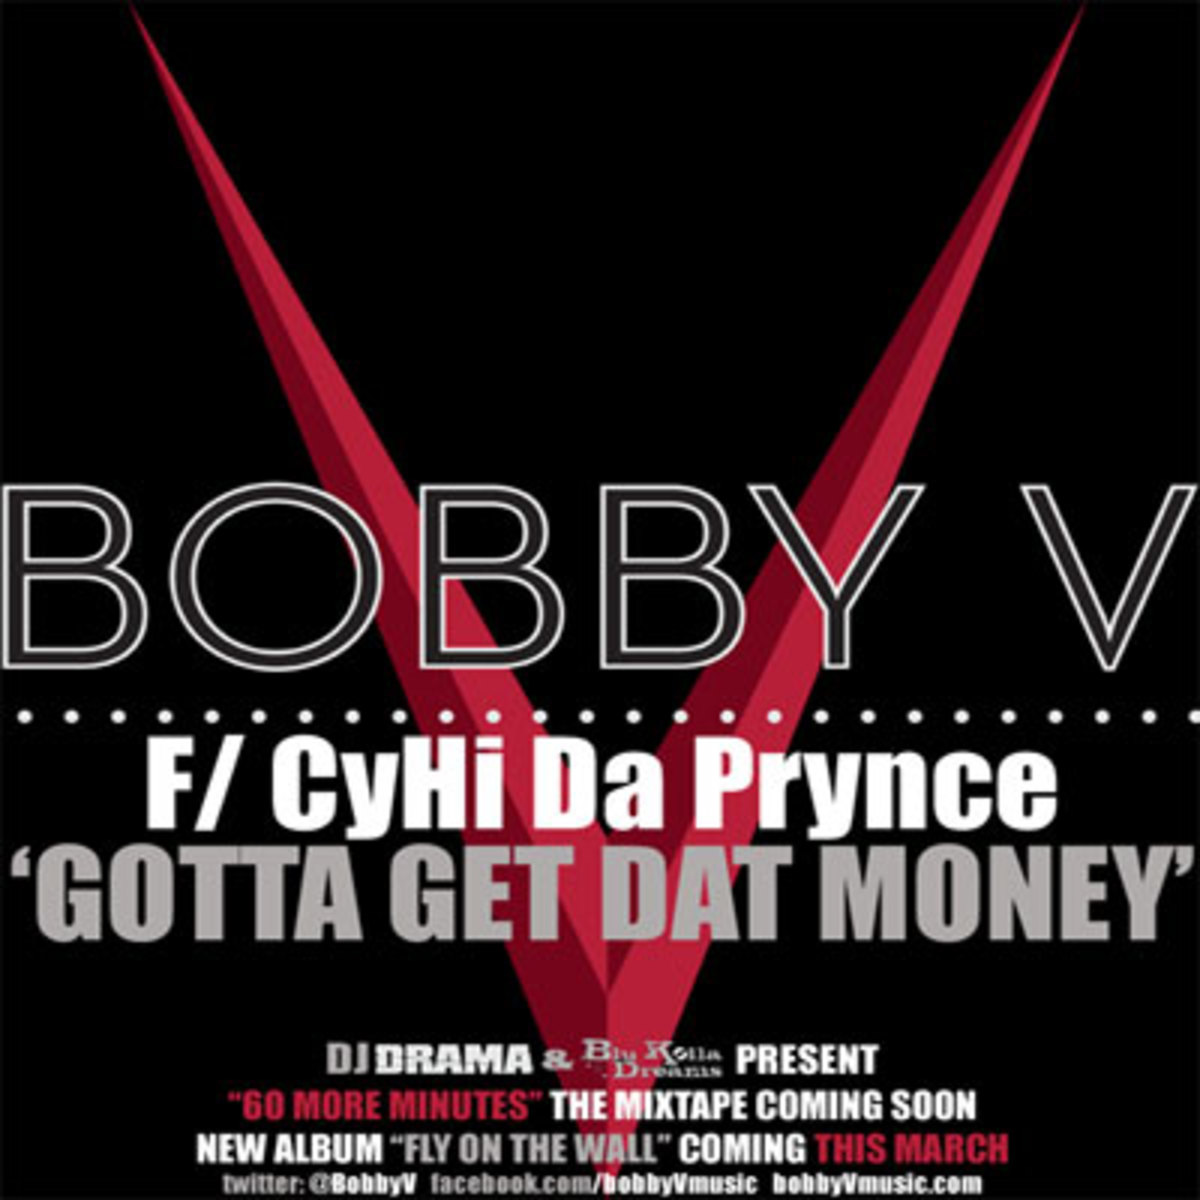 bobbyv-gottagetdatmoney.jpg